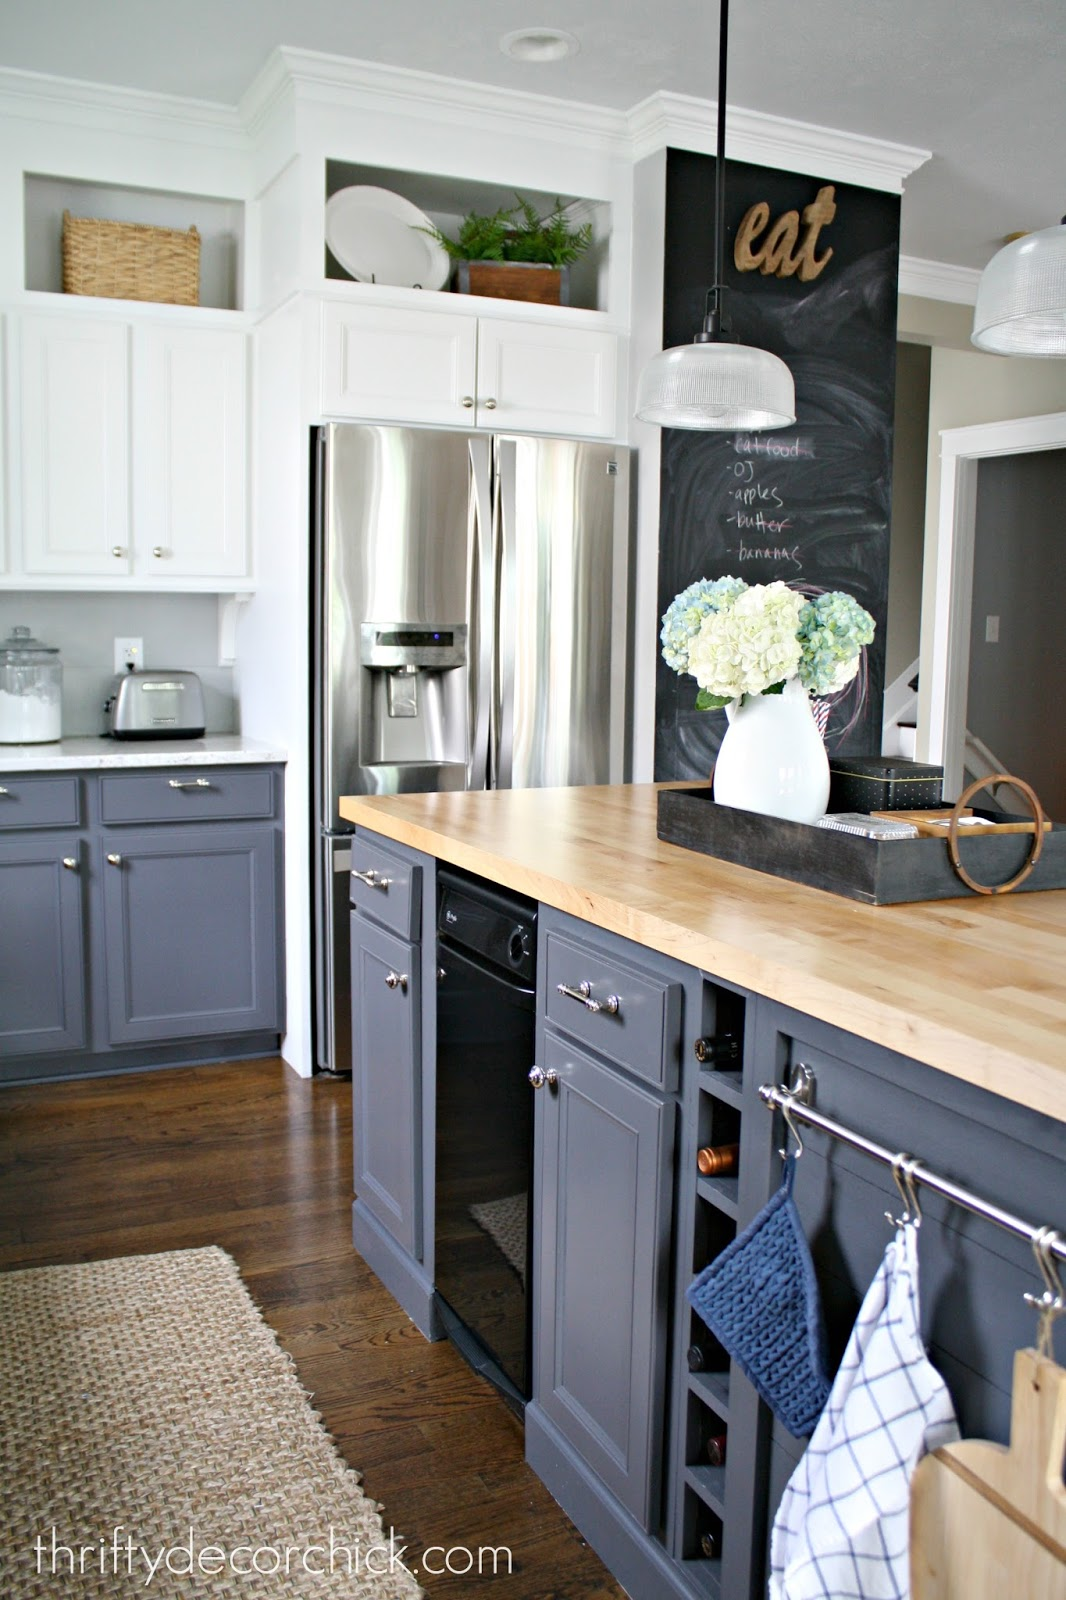 chalkboard in kitchen over the sink lighting surprising color every room needs from thrifty